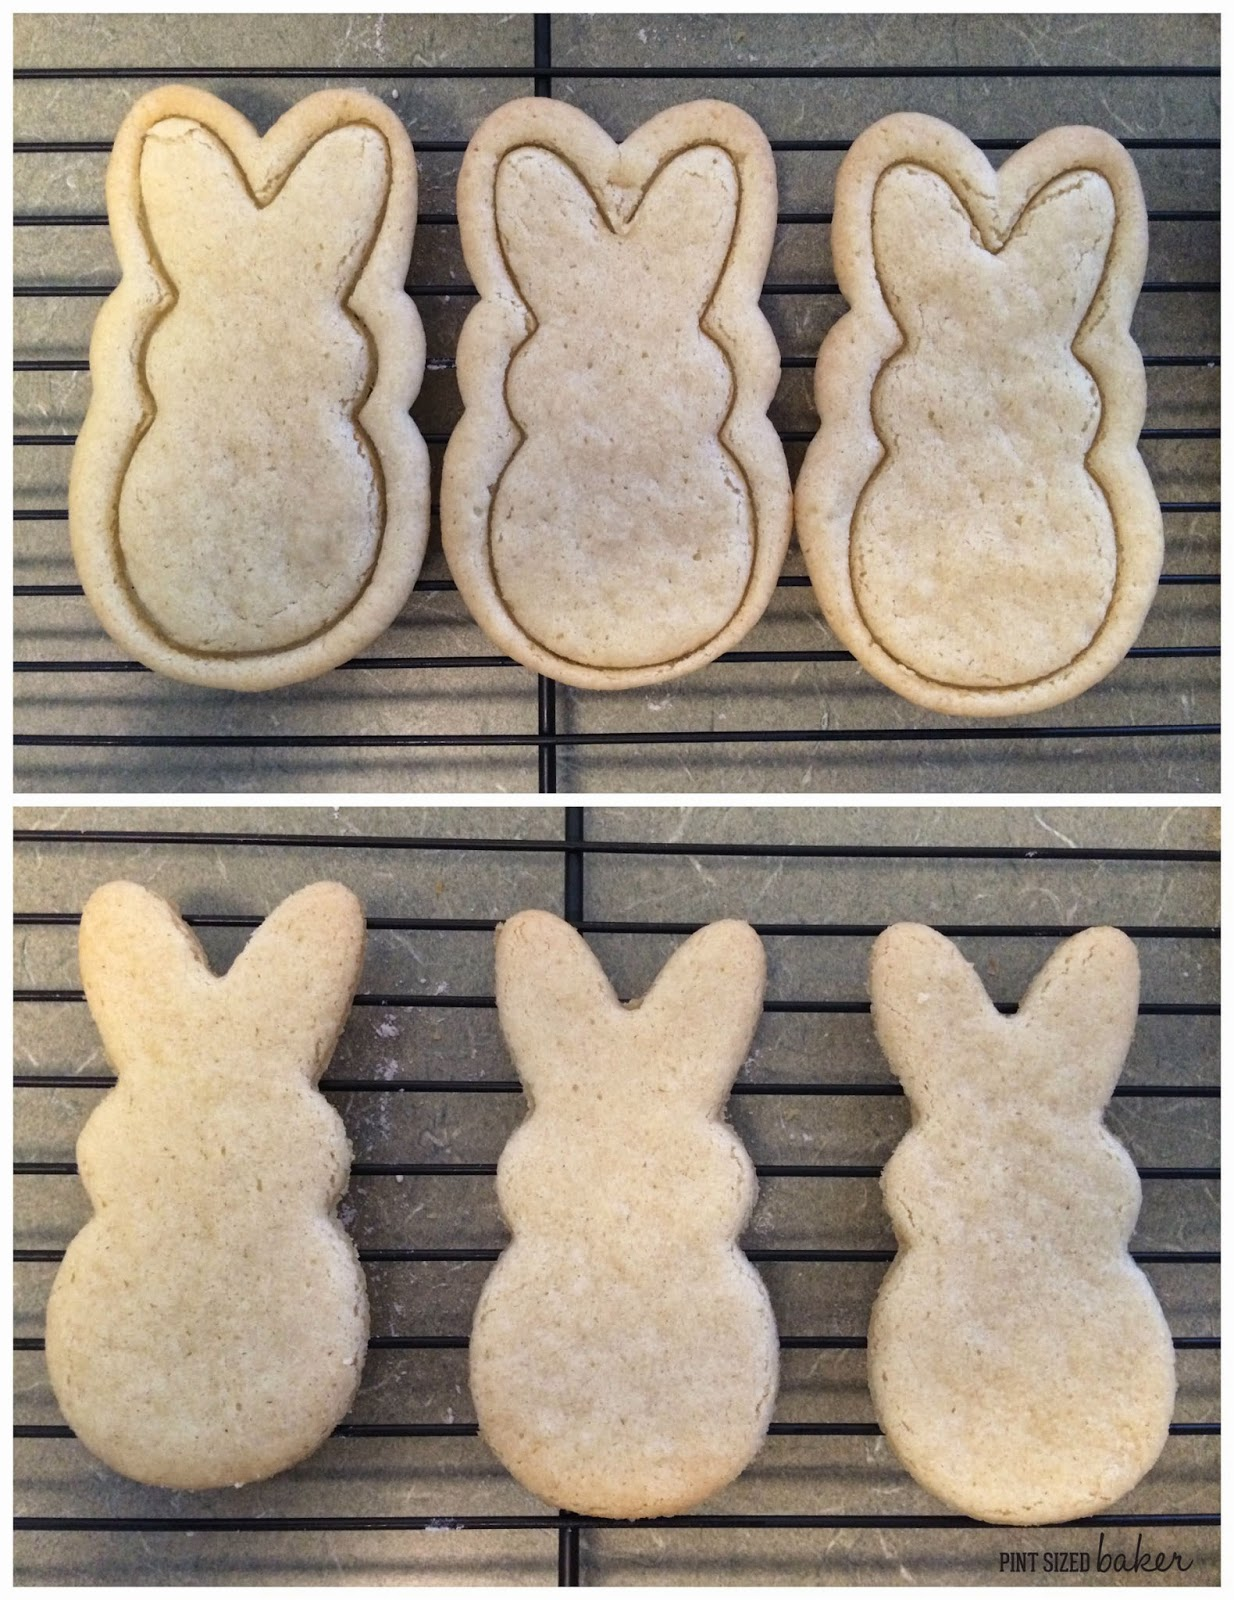 Bakes Tip - Baked sugar cookies for kinda ugly in the oven? No problem, just use your cutter to recut them so they are perfect once again!